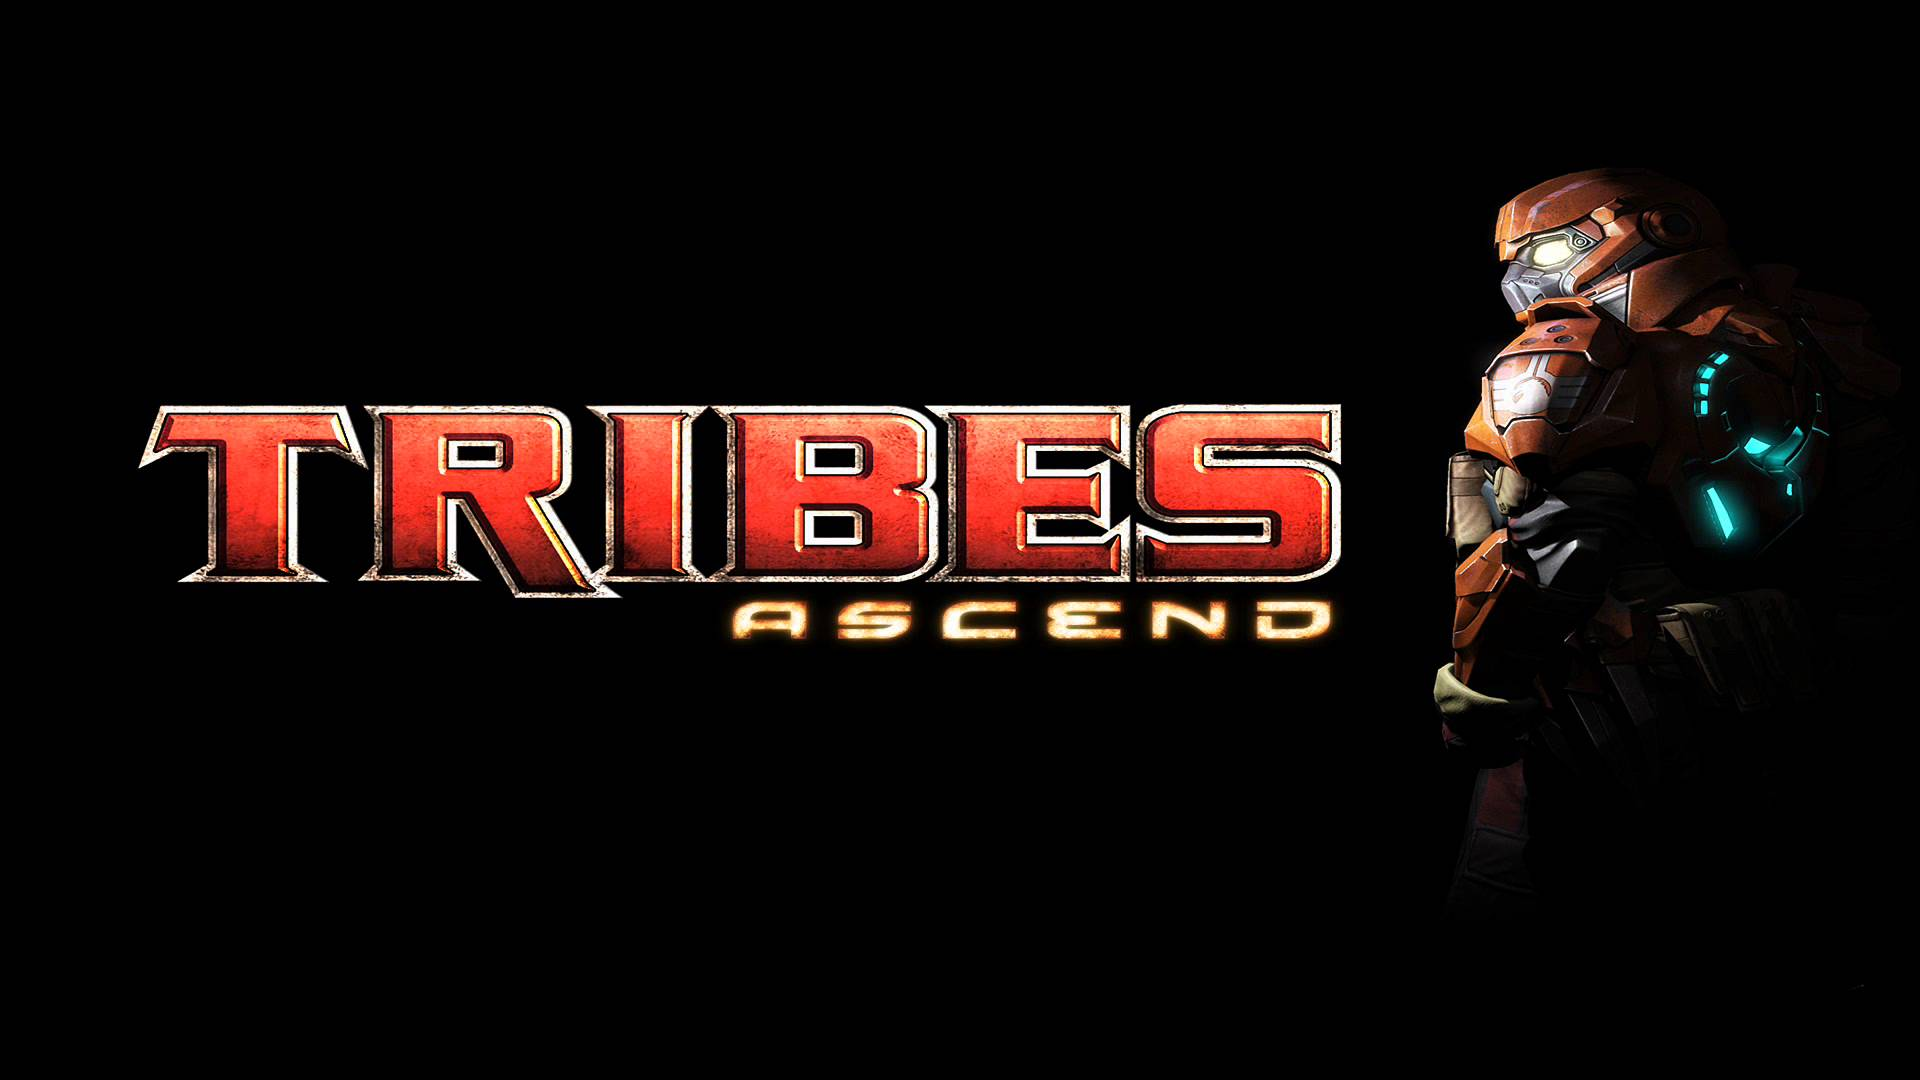 Tribes Ascend High Quality Background on Wallpapers Vista